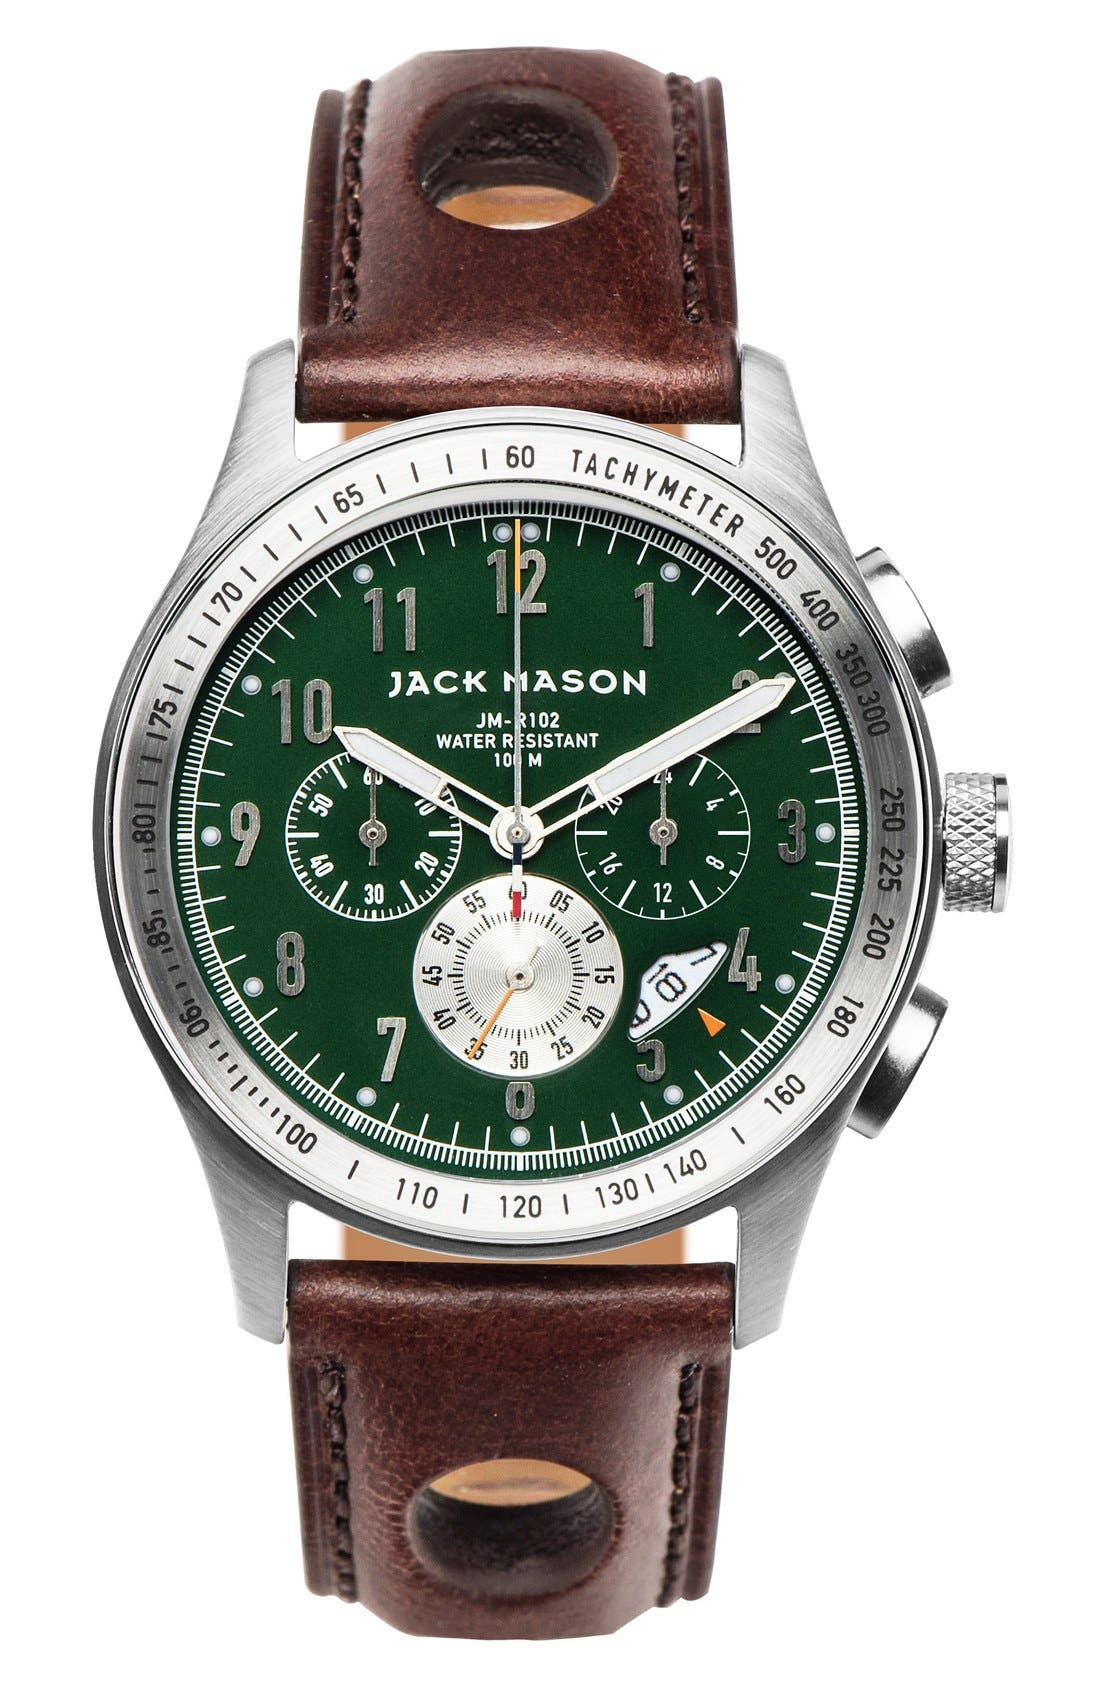 Main Image - Jack Mason Racing Chronograph Leather Strap Watch, 42mm case